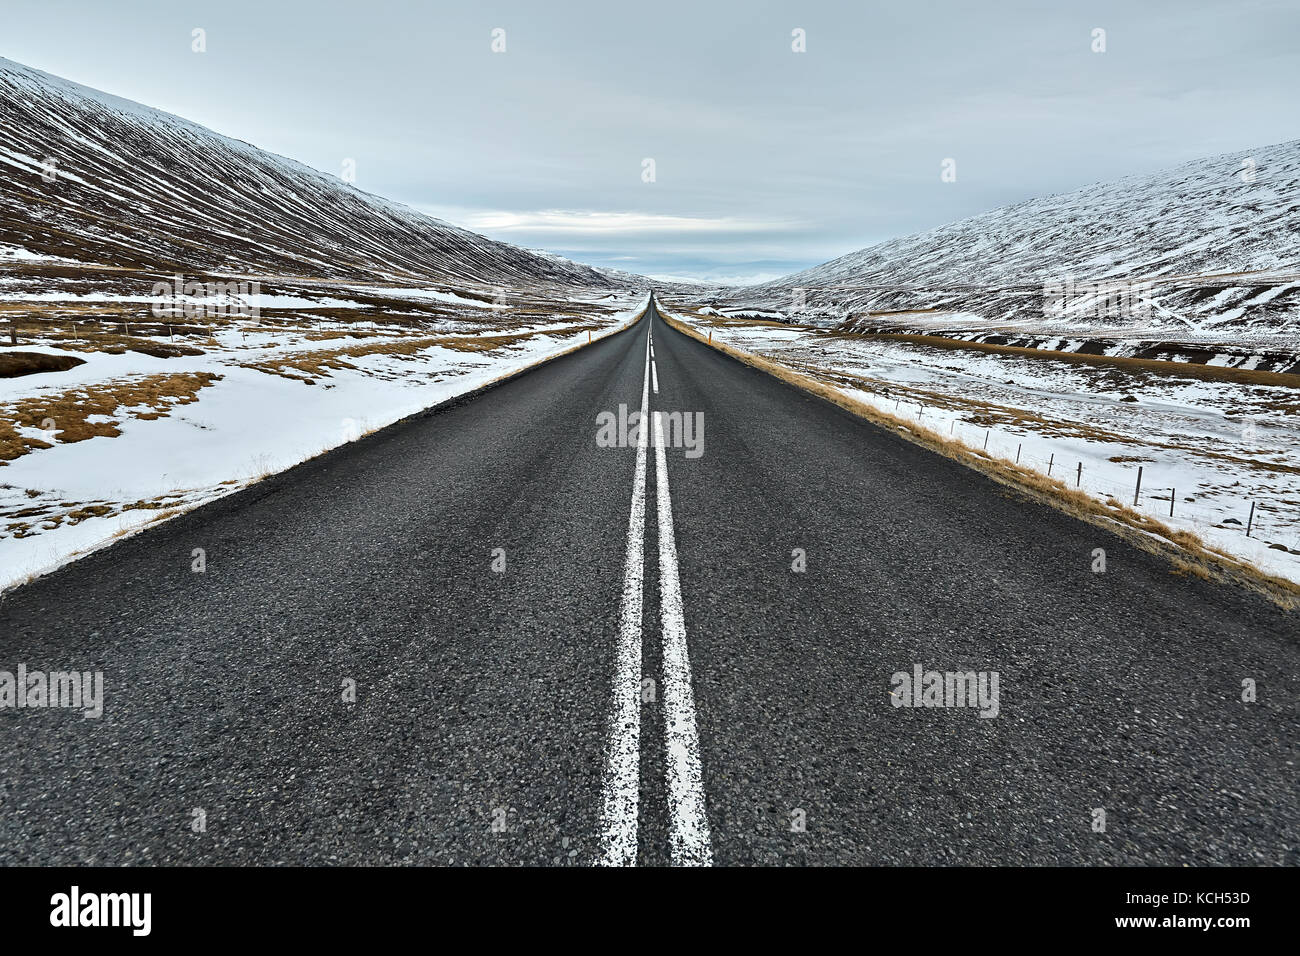 Route de pays en Islande Photo Stock